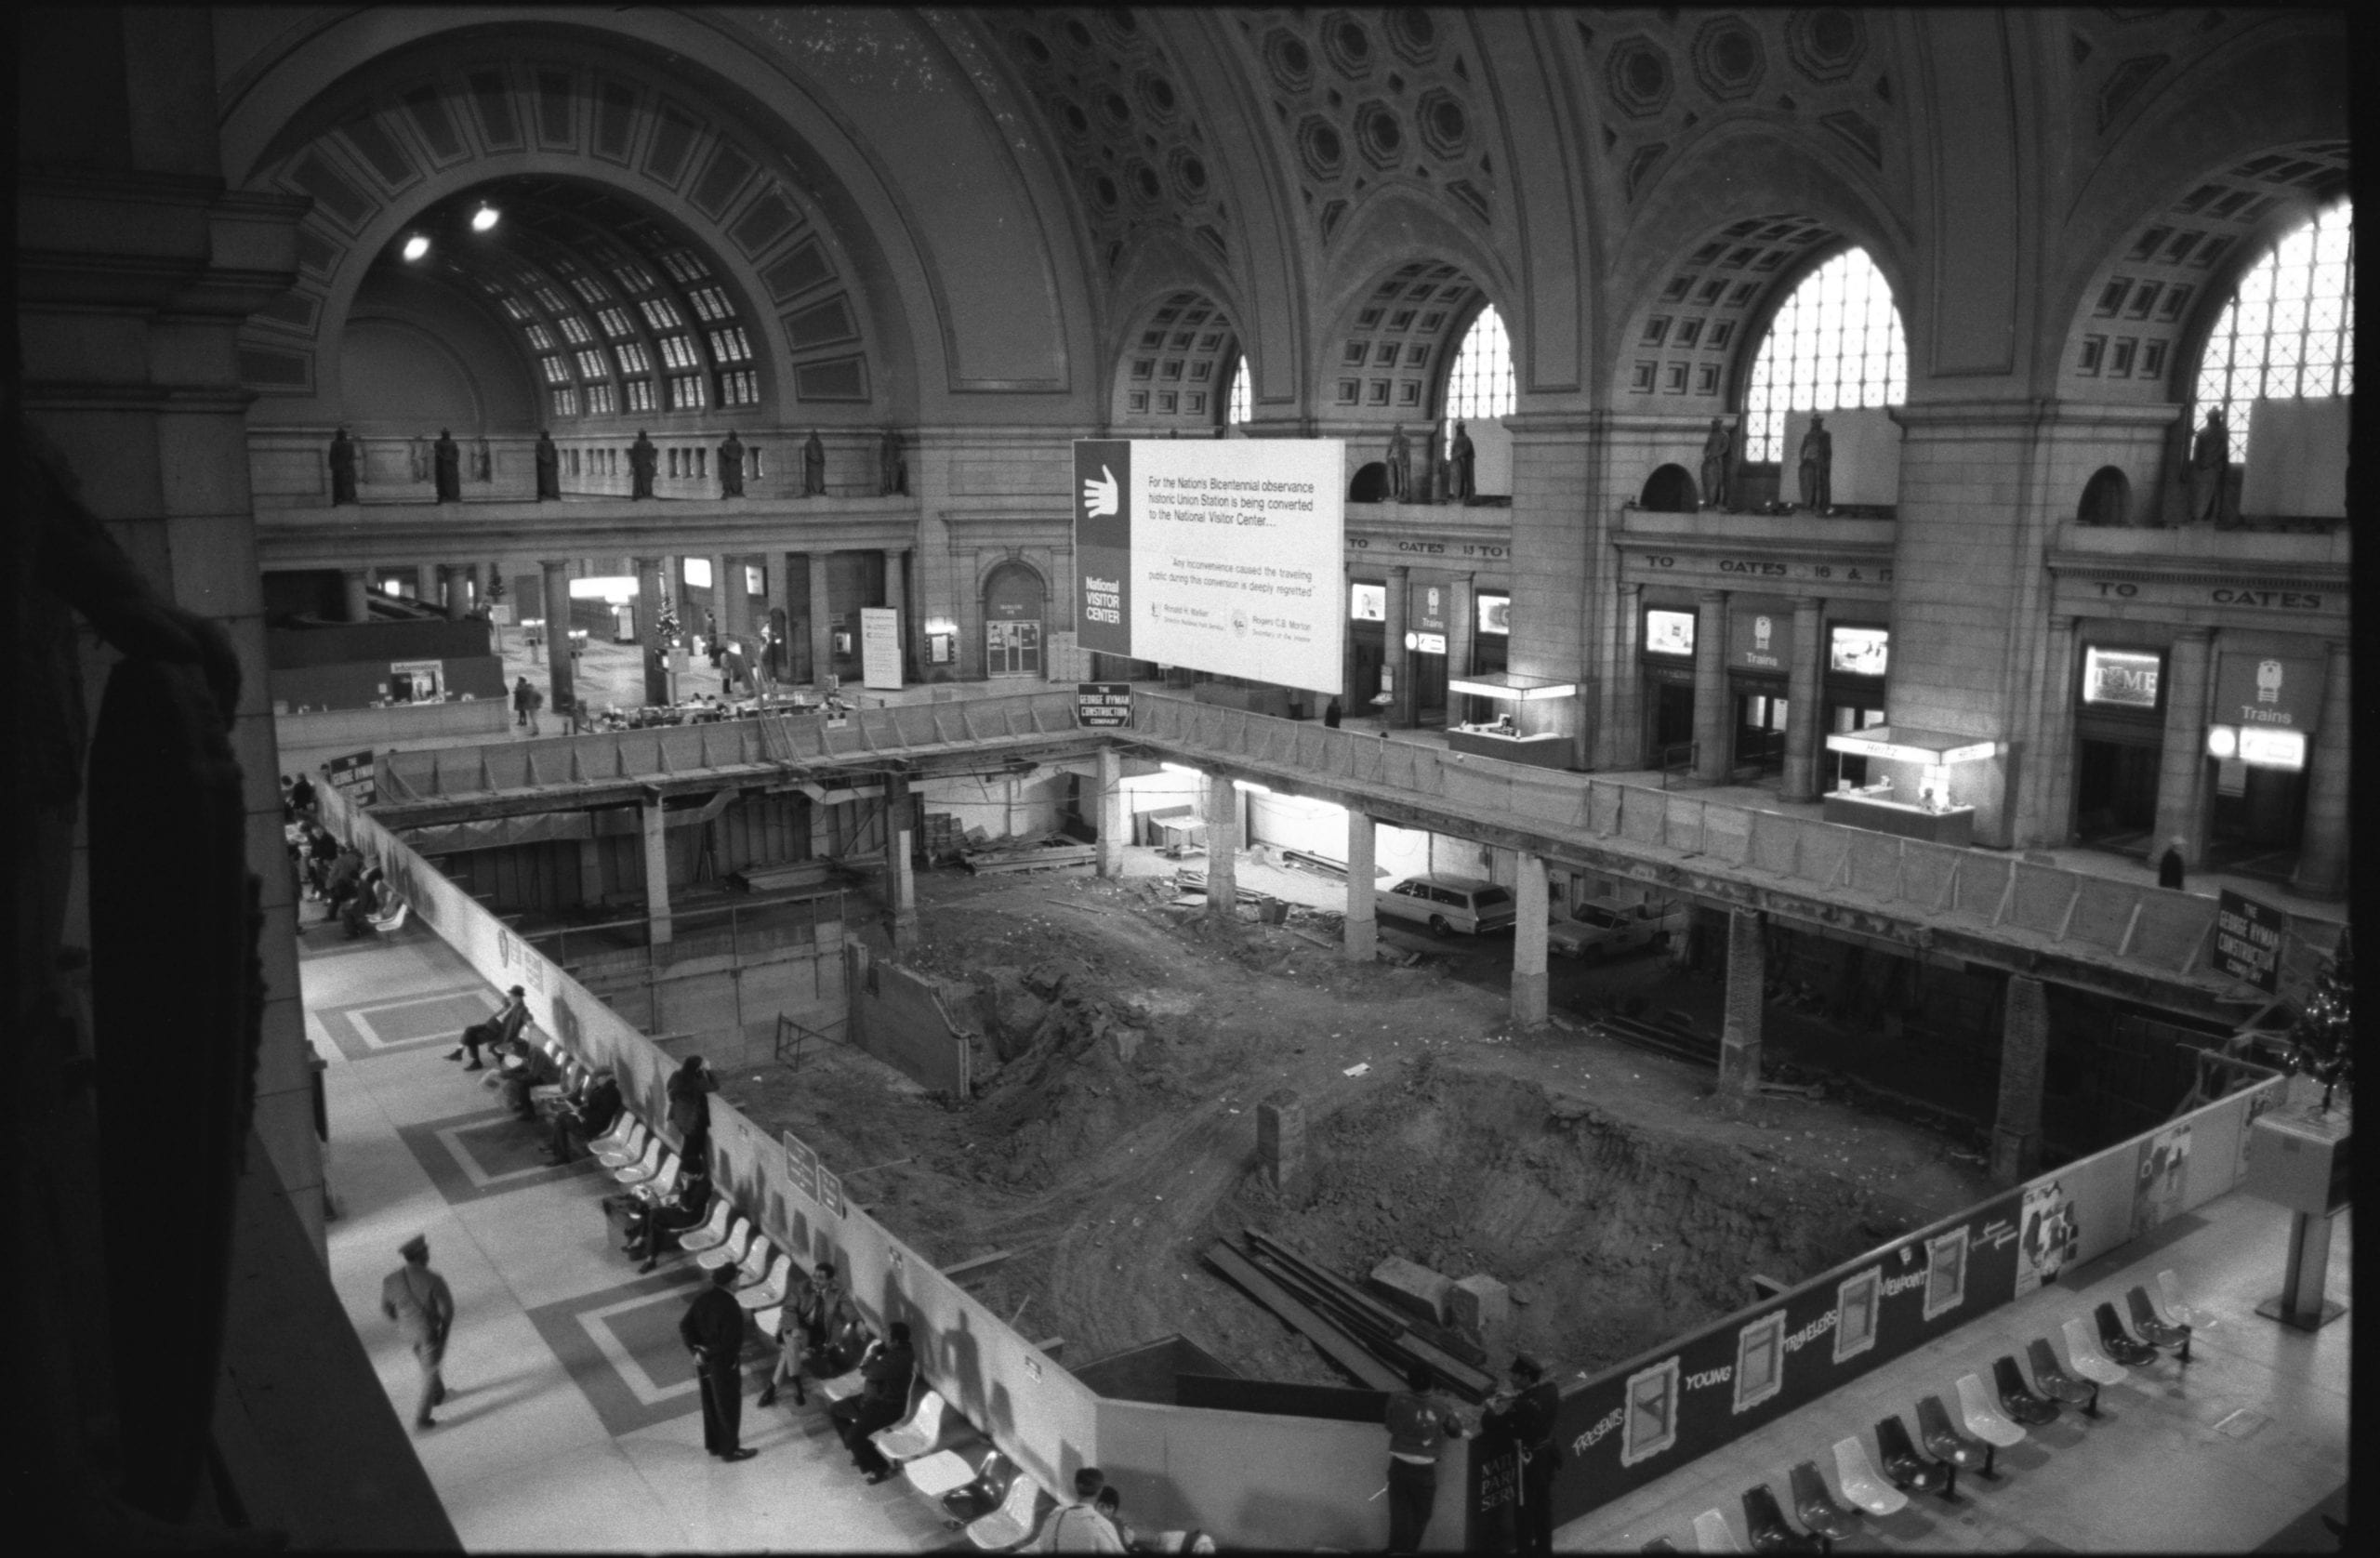 Union Station Reconstruction in the 1970s